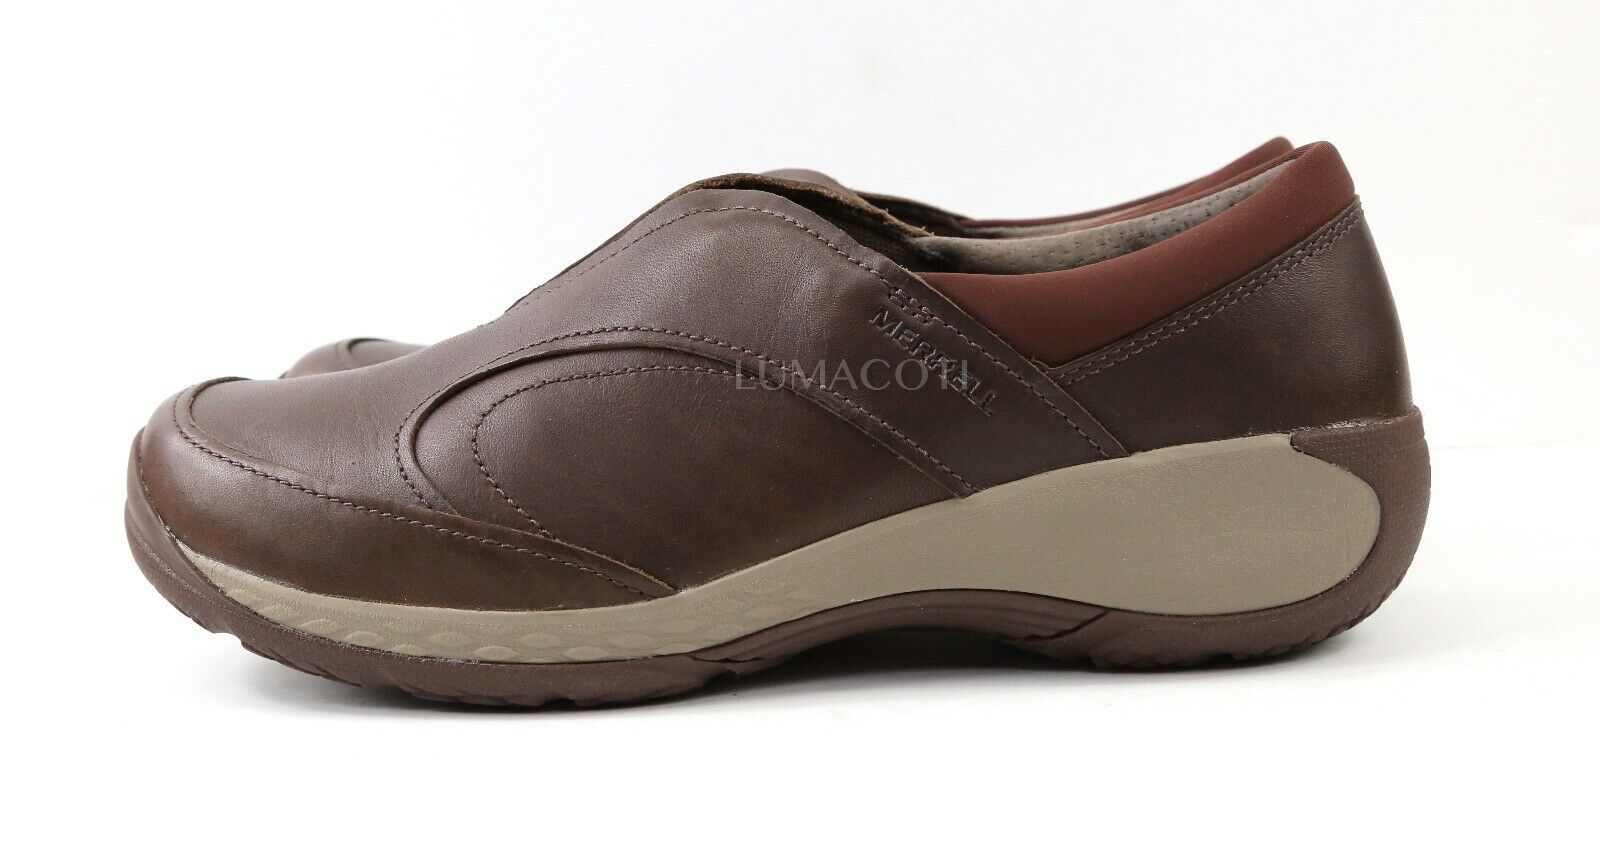 Womens Merrell Encore Q2 Moc Clog - Expresso Leather Size 10 [J45796]